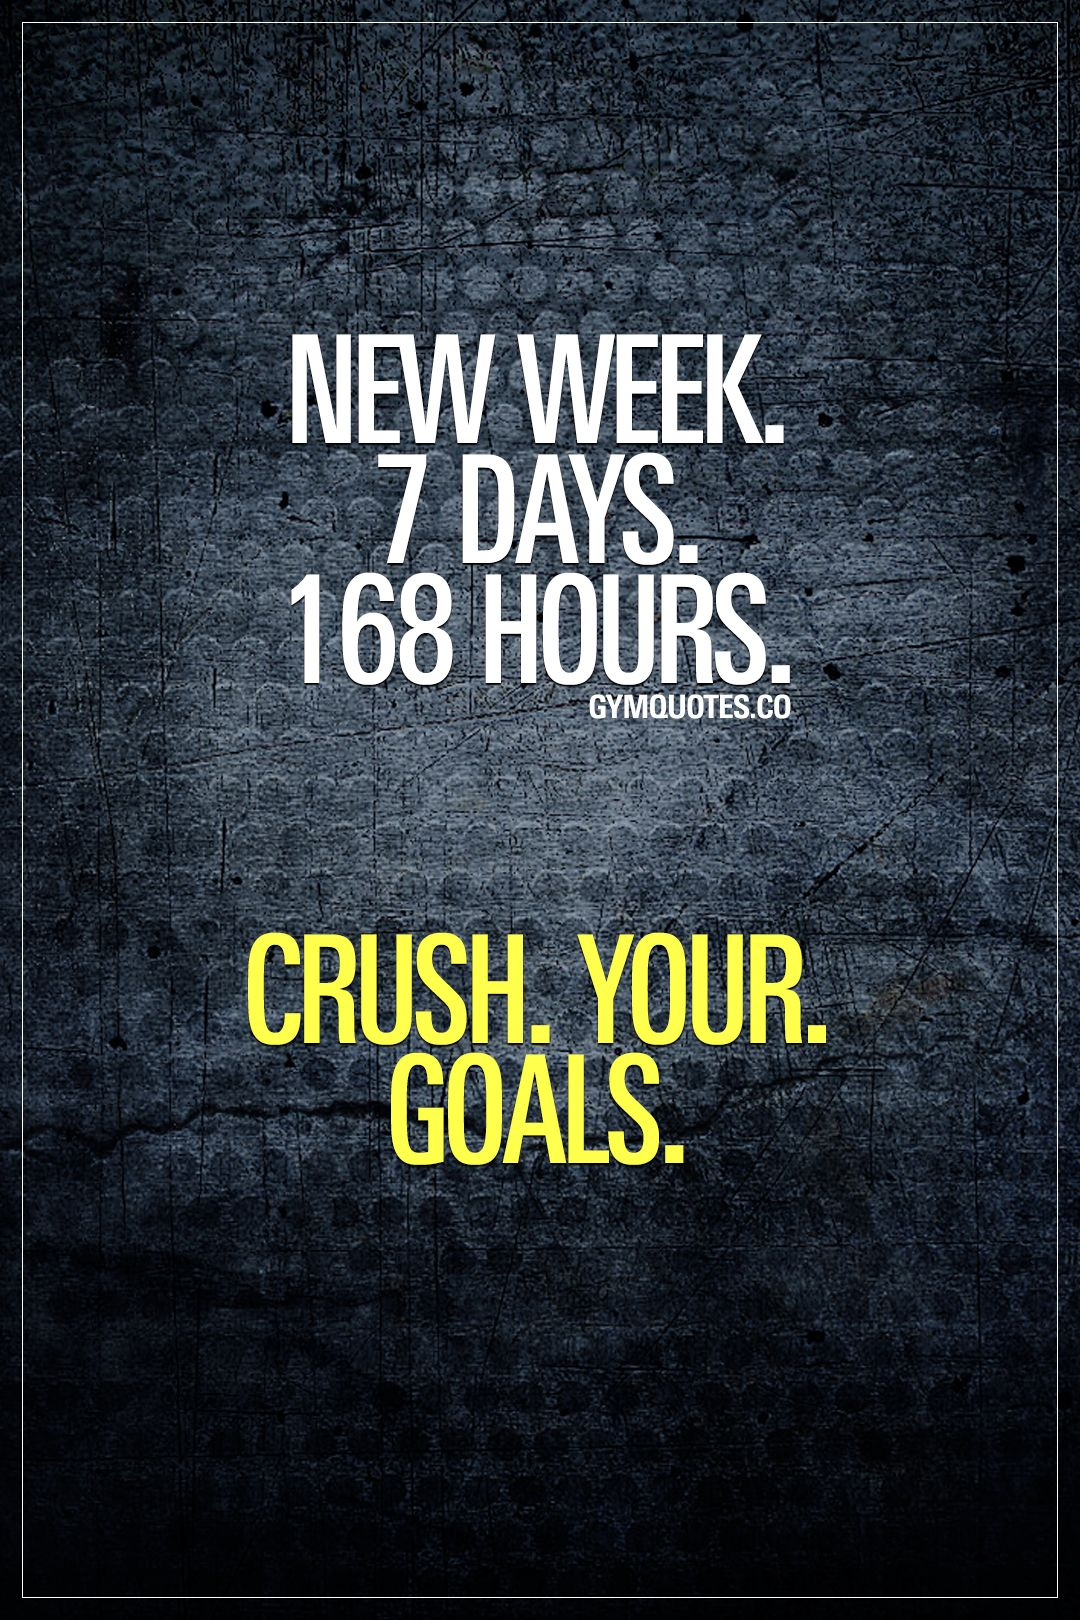 New week 7 days 168 hours Crush Your Goals